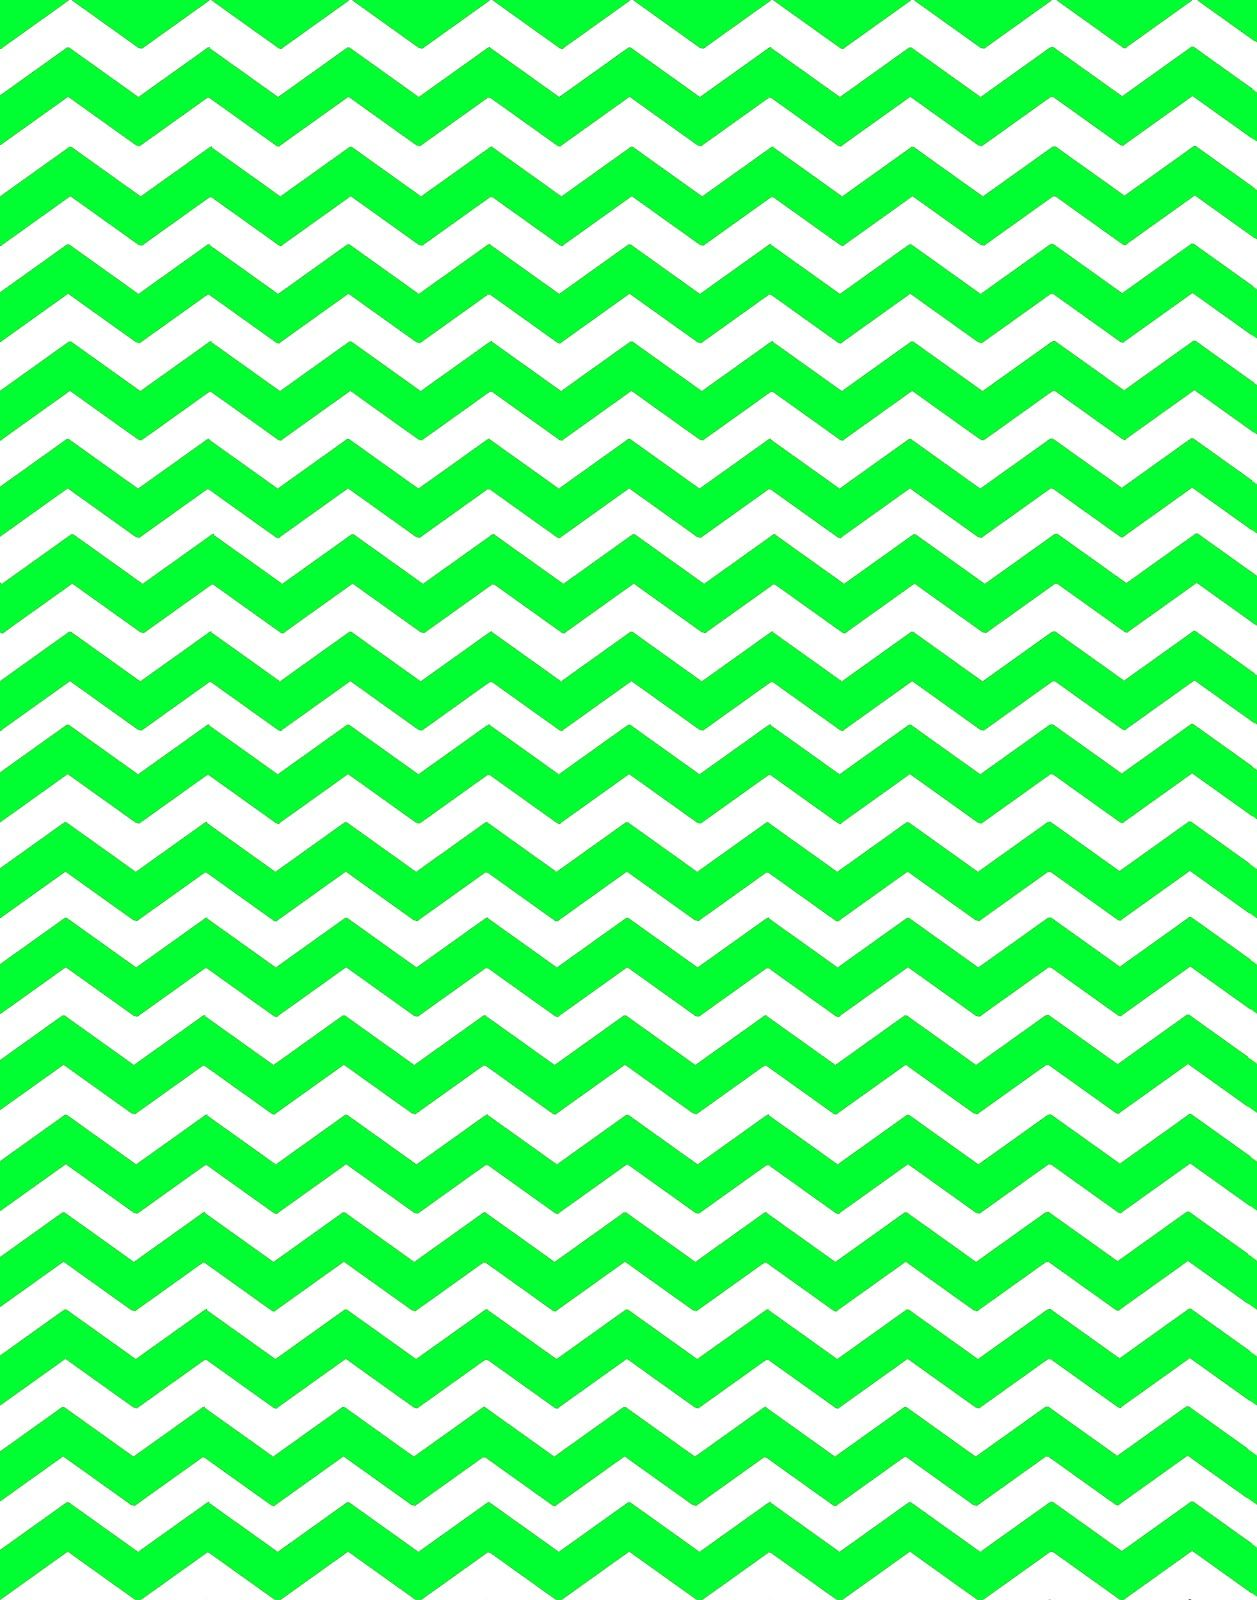 chevron pattern | 16 New Colors Chevron background patterns!